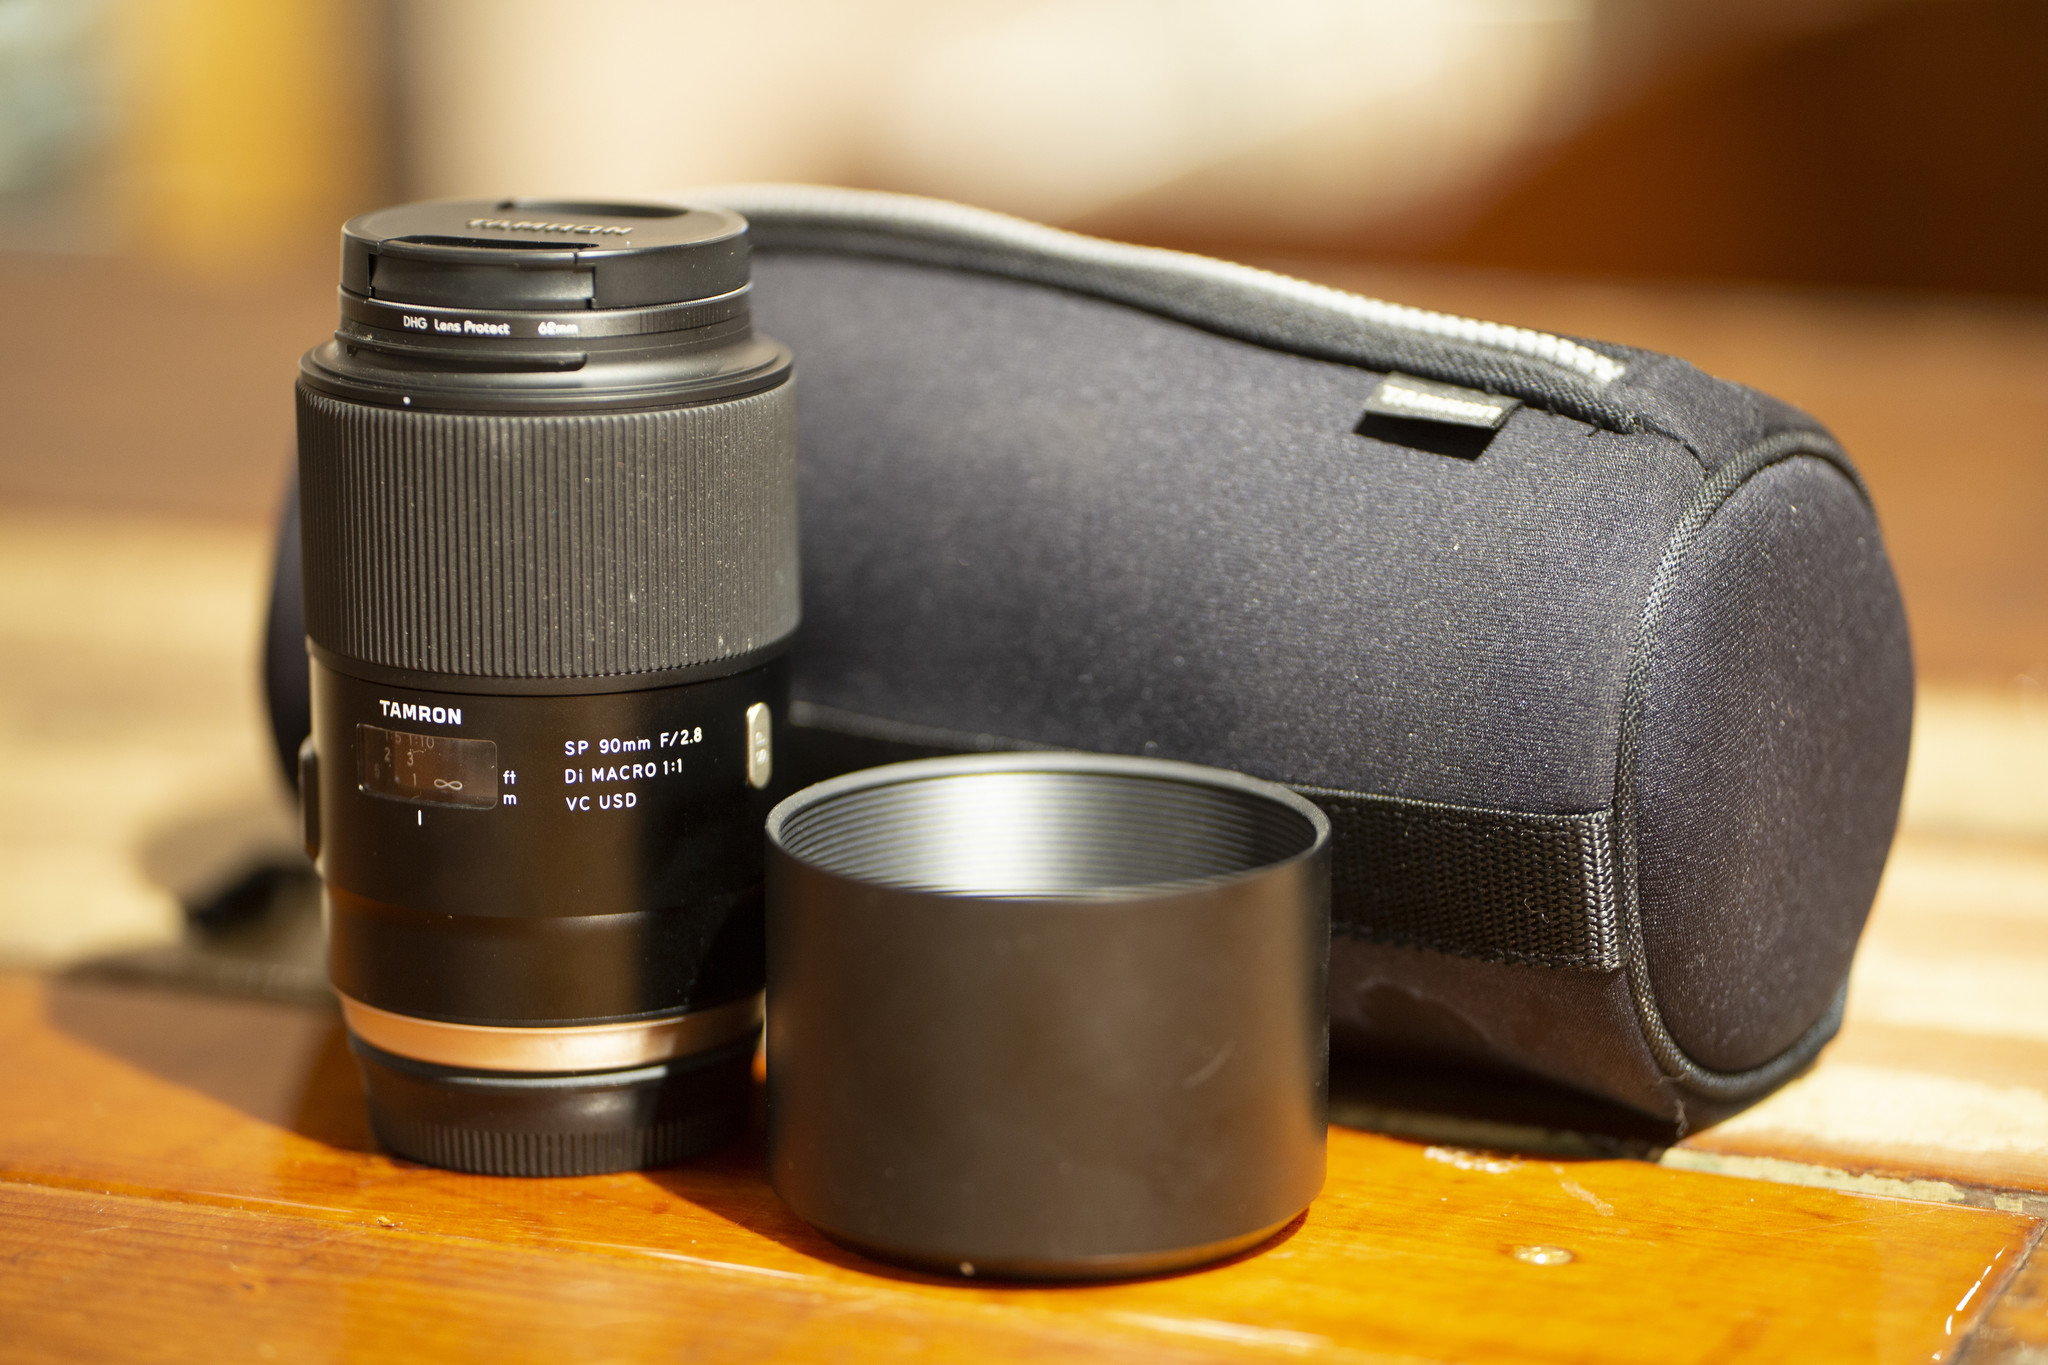 A Tamron lens rental including a Tamron lens and lens case, a DHG filter, and a lens hood.